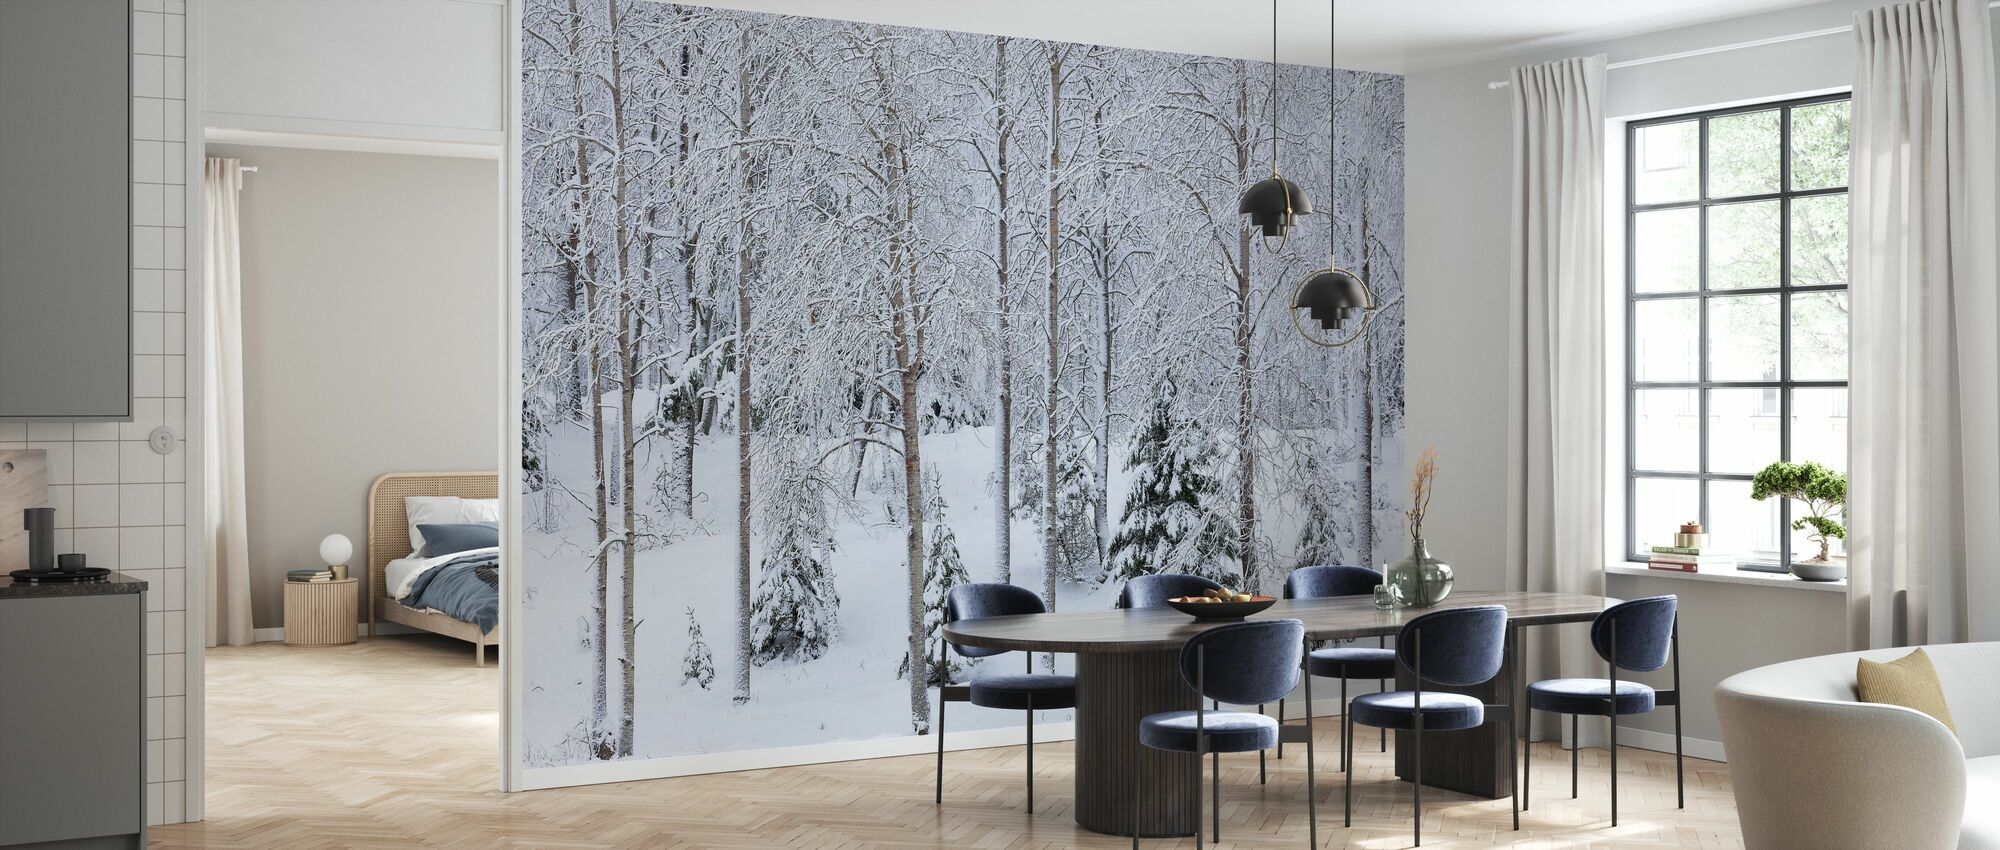 Snow in the Forest - Wallpaper - Kitchen